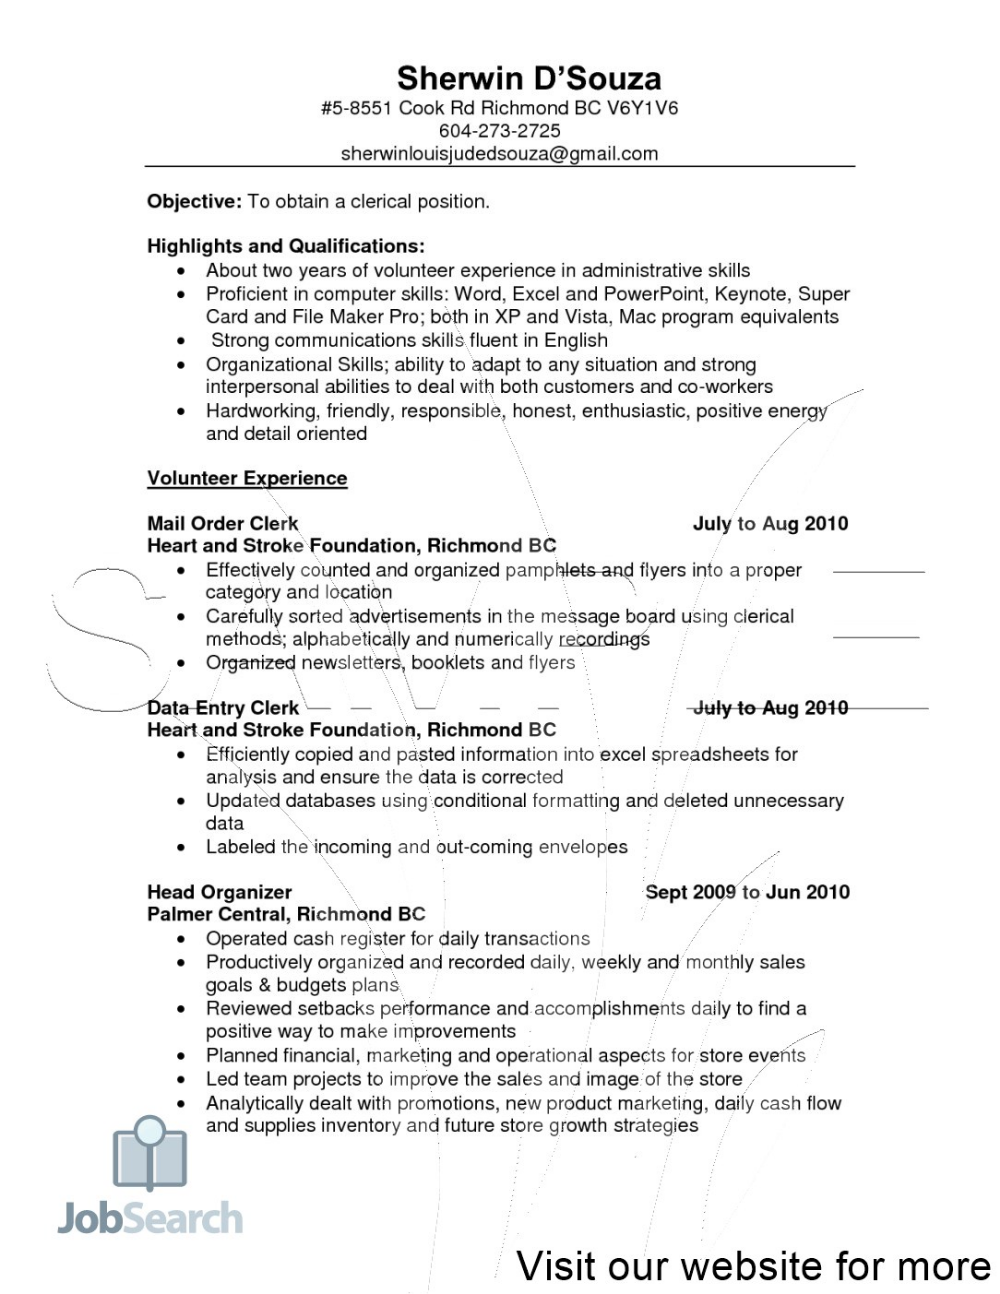 Objective For Resume Clerical Work 2020 Good Objective For